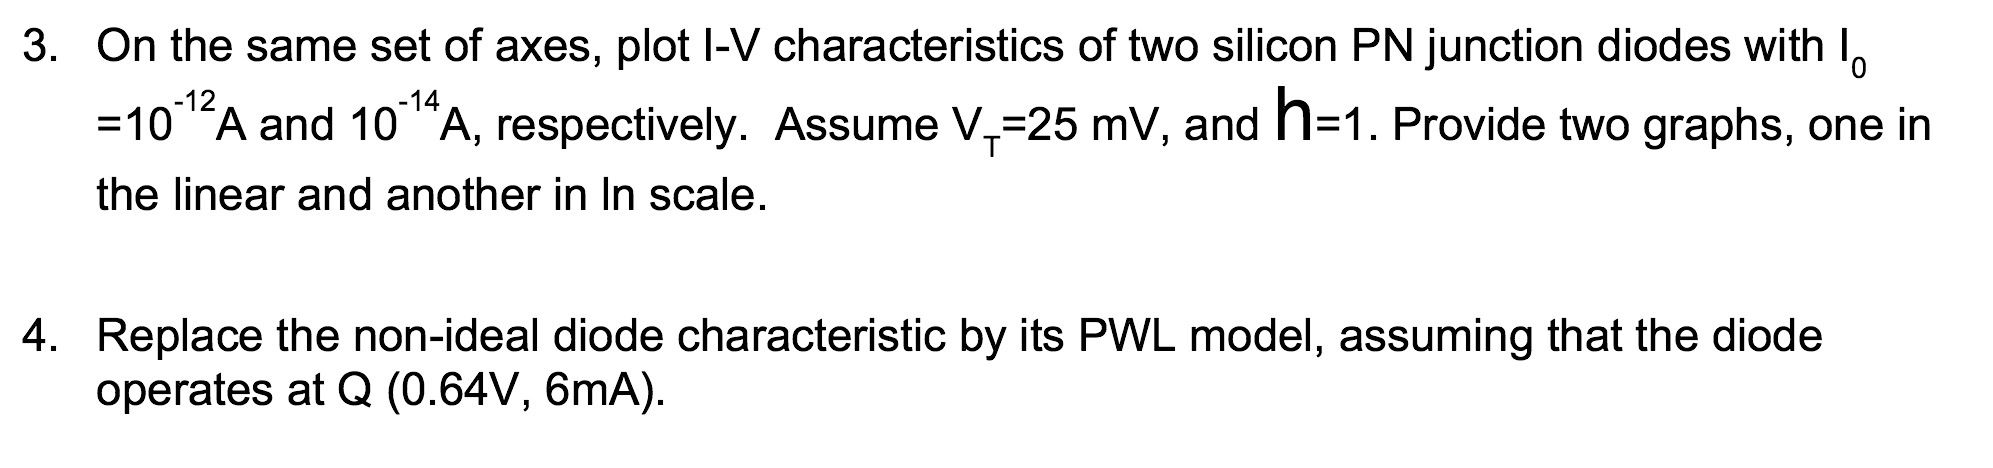 On the same set of axes, plot I-V characteristics